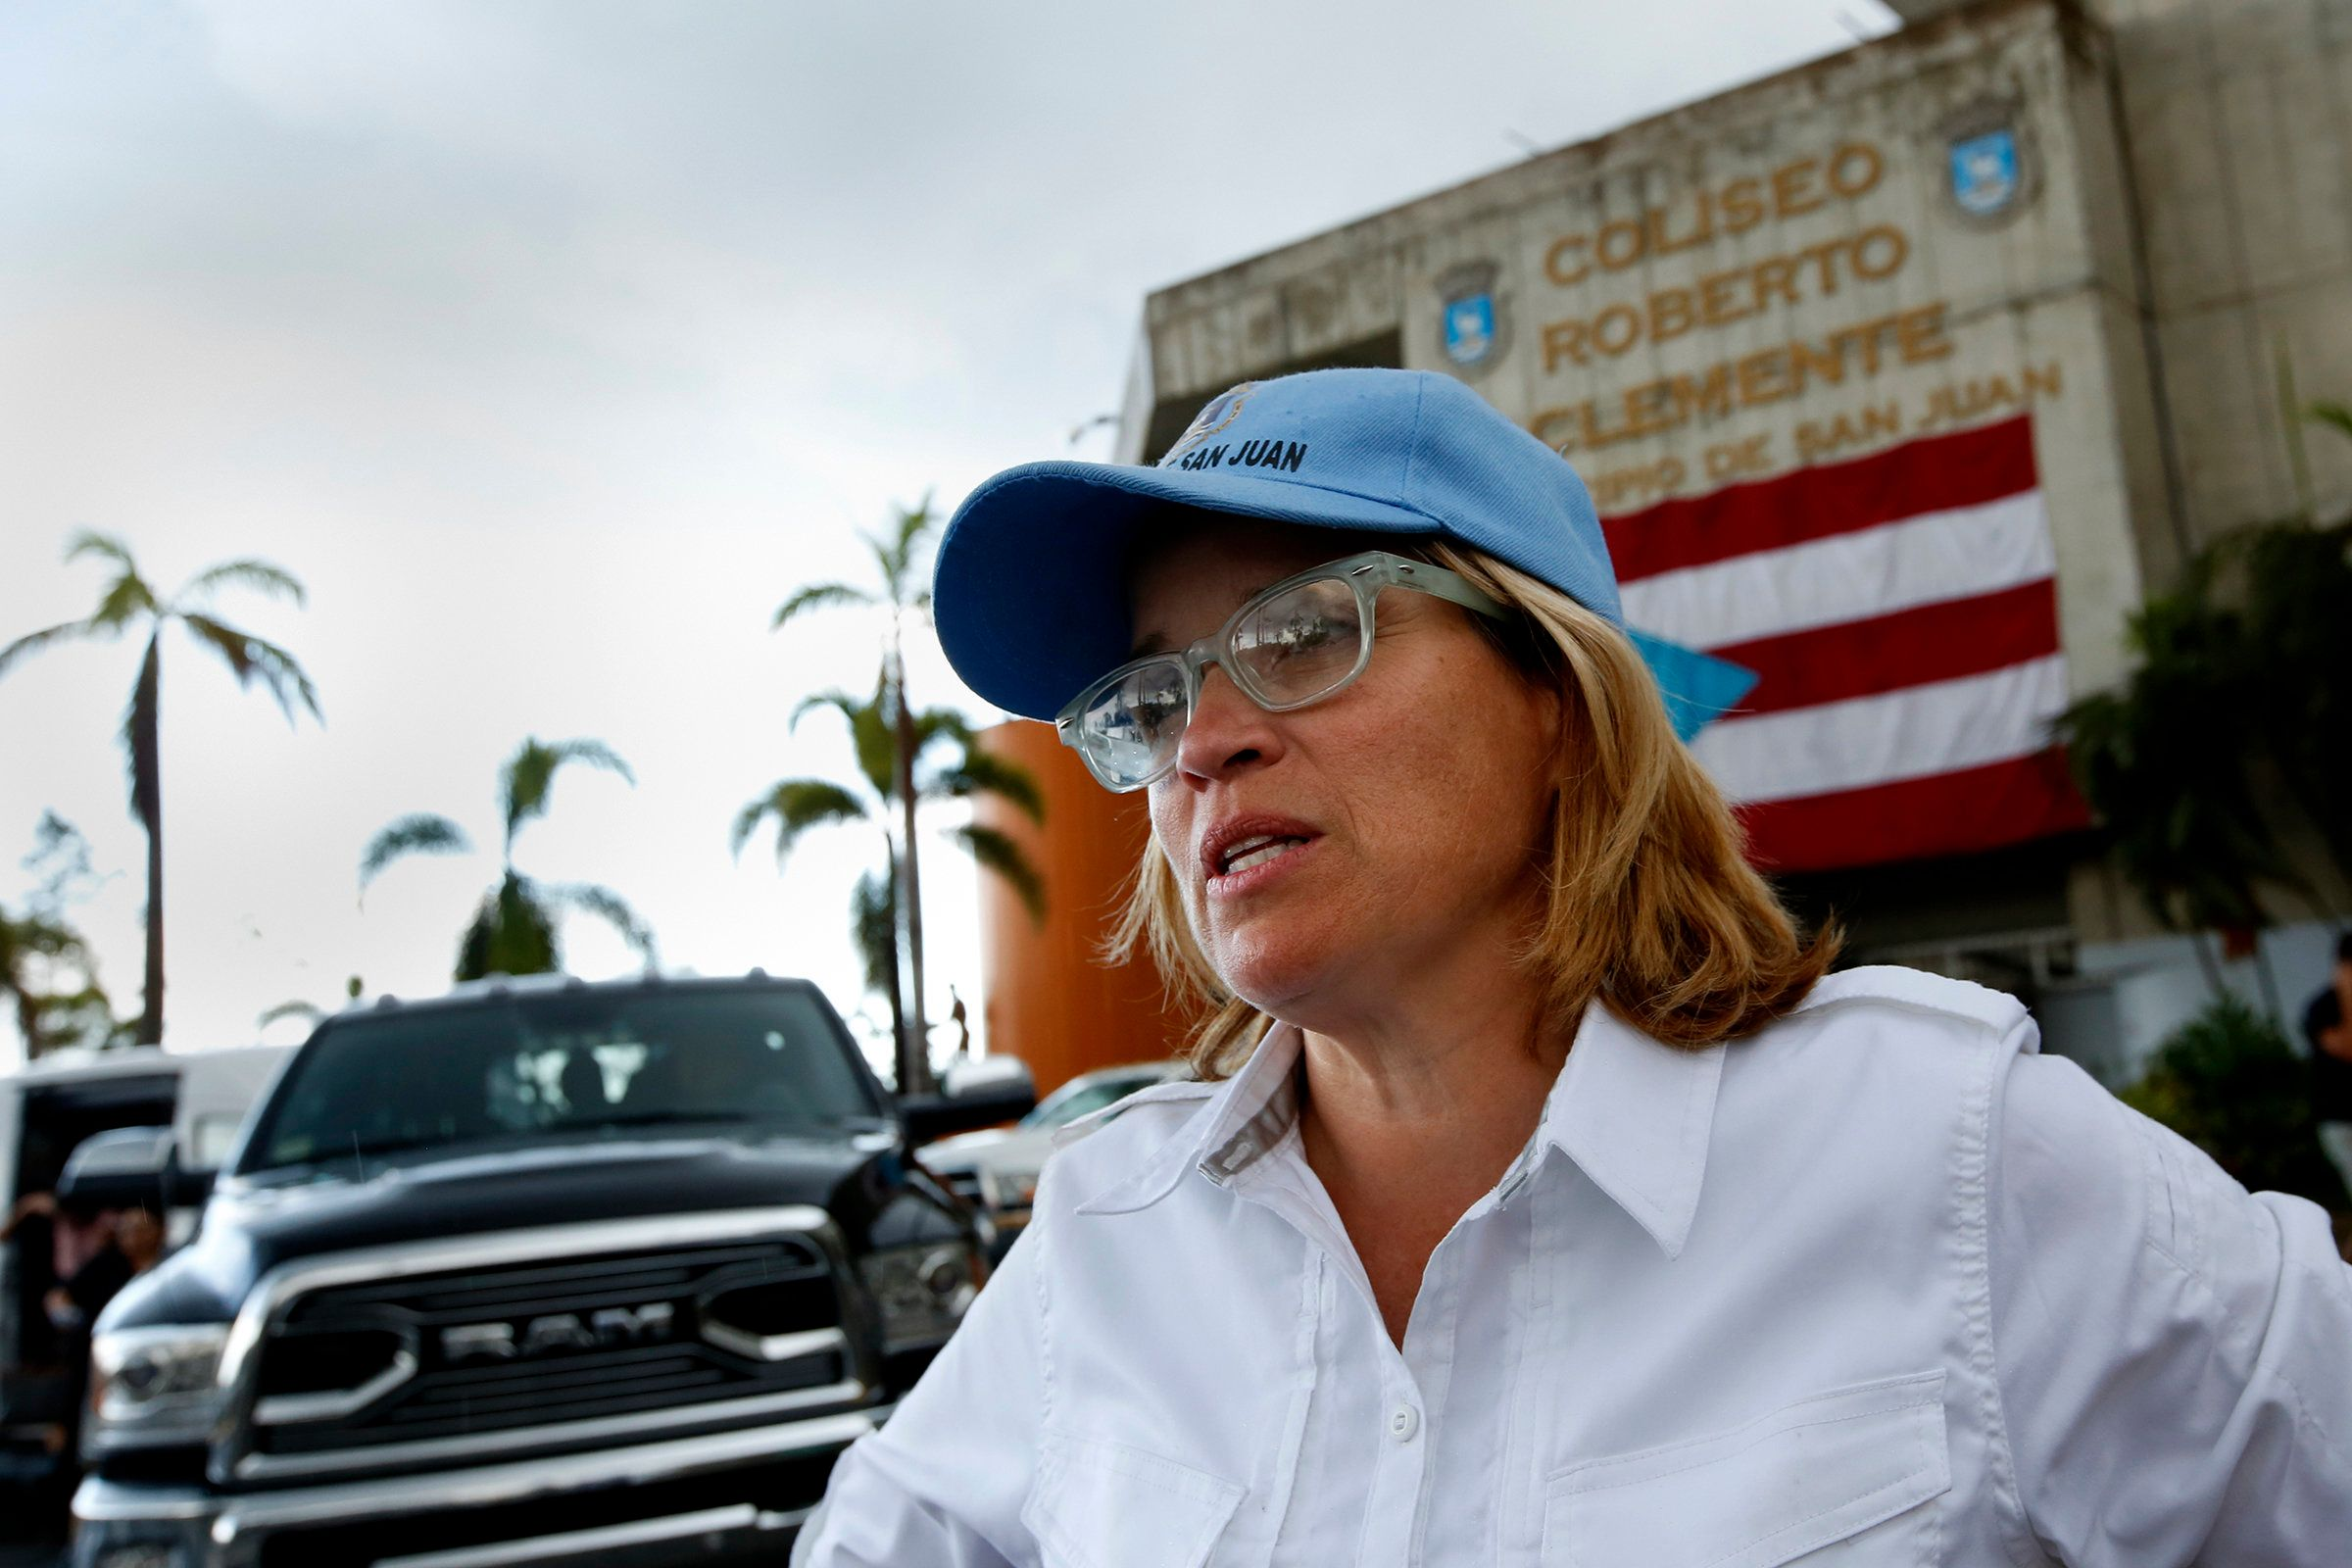 SAN JUAN, PUERTO RICO - OCTOBER 2: San Juan mayor Carmen Yulin Cruz believes this is not the time for politics, including the discussion of statehood for Puerto Rico. She says all should come together to try to help the island recover. The debate over whether or not Puerto Rico should be given statehood has surfaced again with the attention hurricane Maria brought to the island. (Photo by Carolyn Cole/Los Angeles Times via Getty Images)